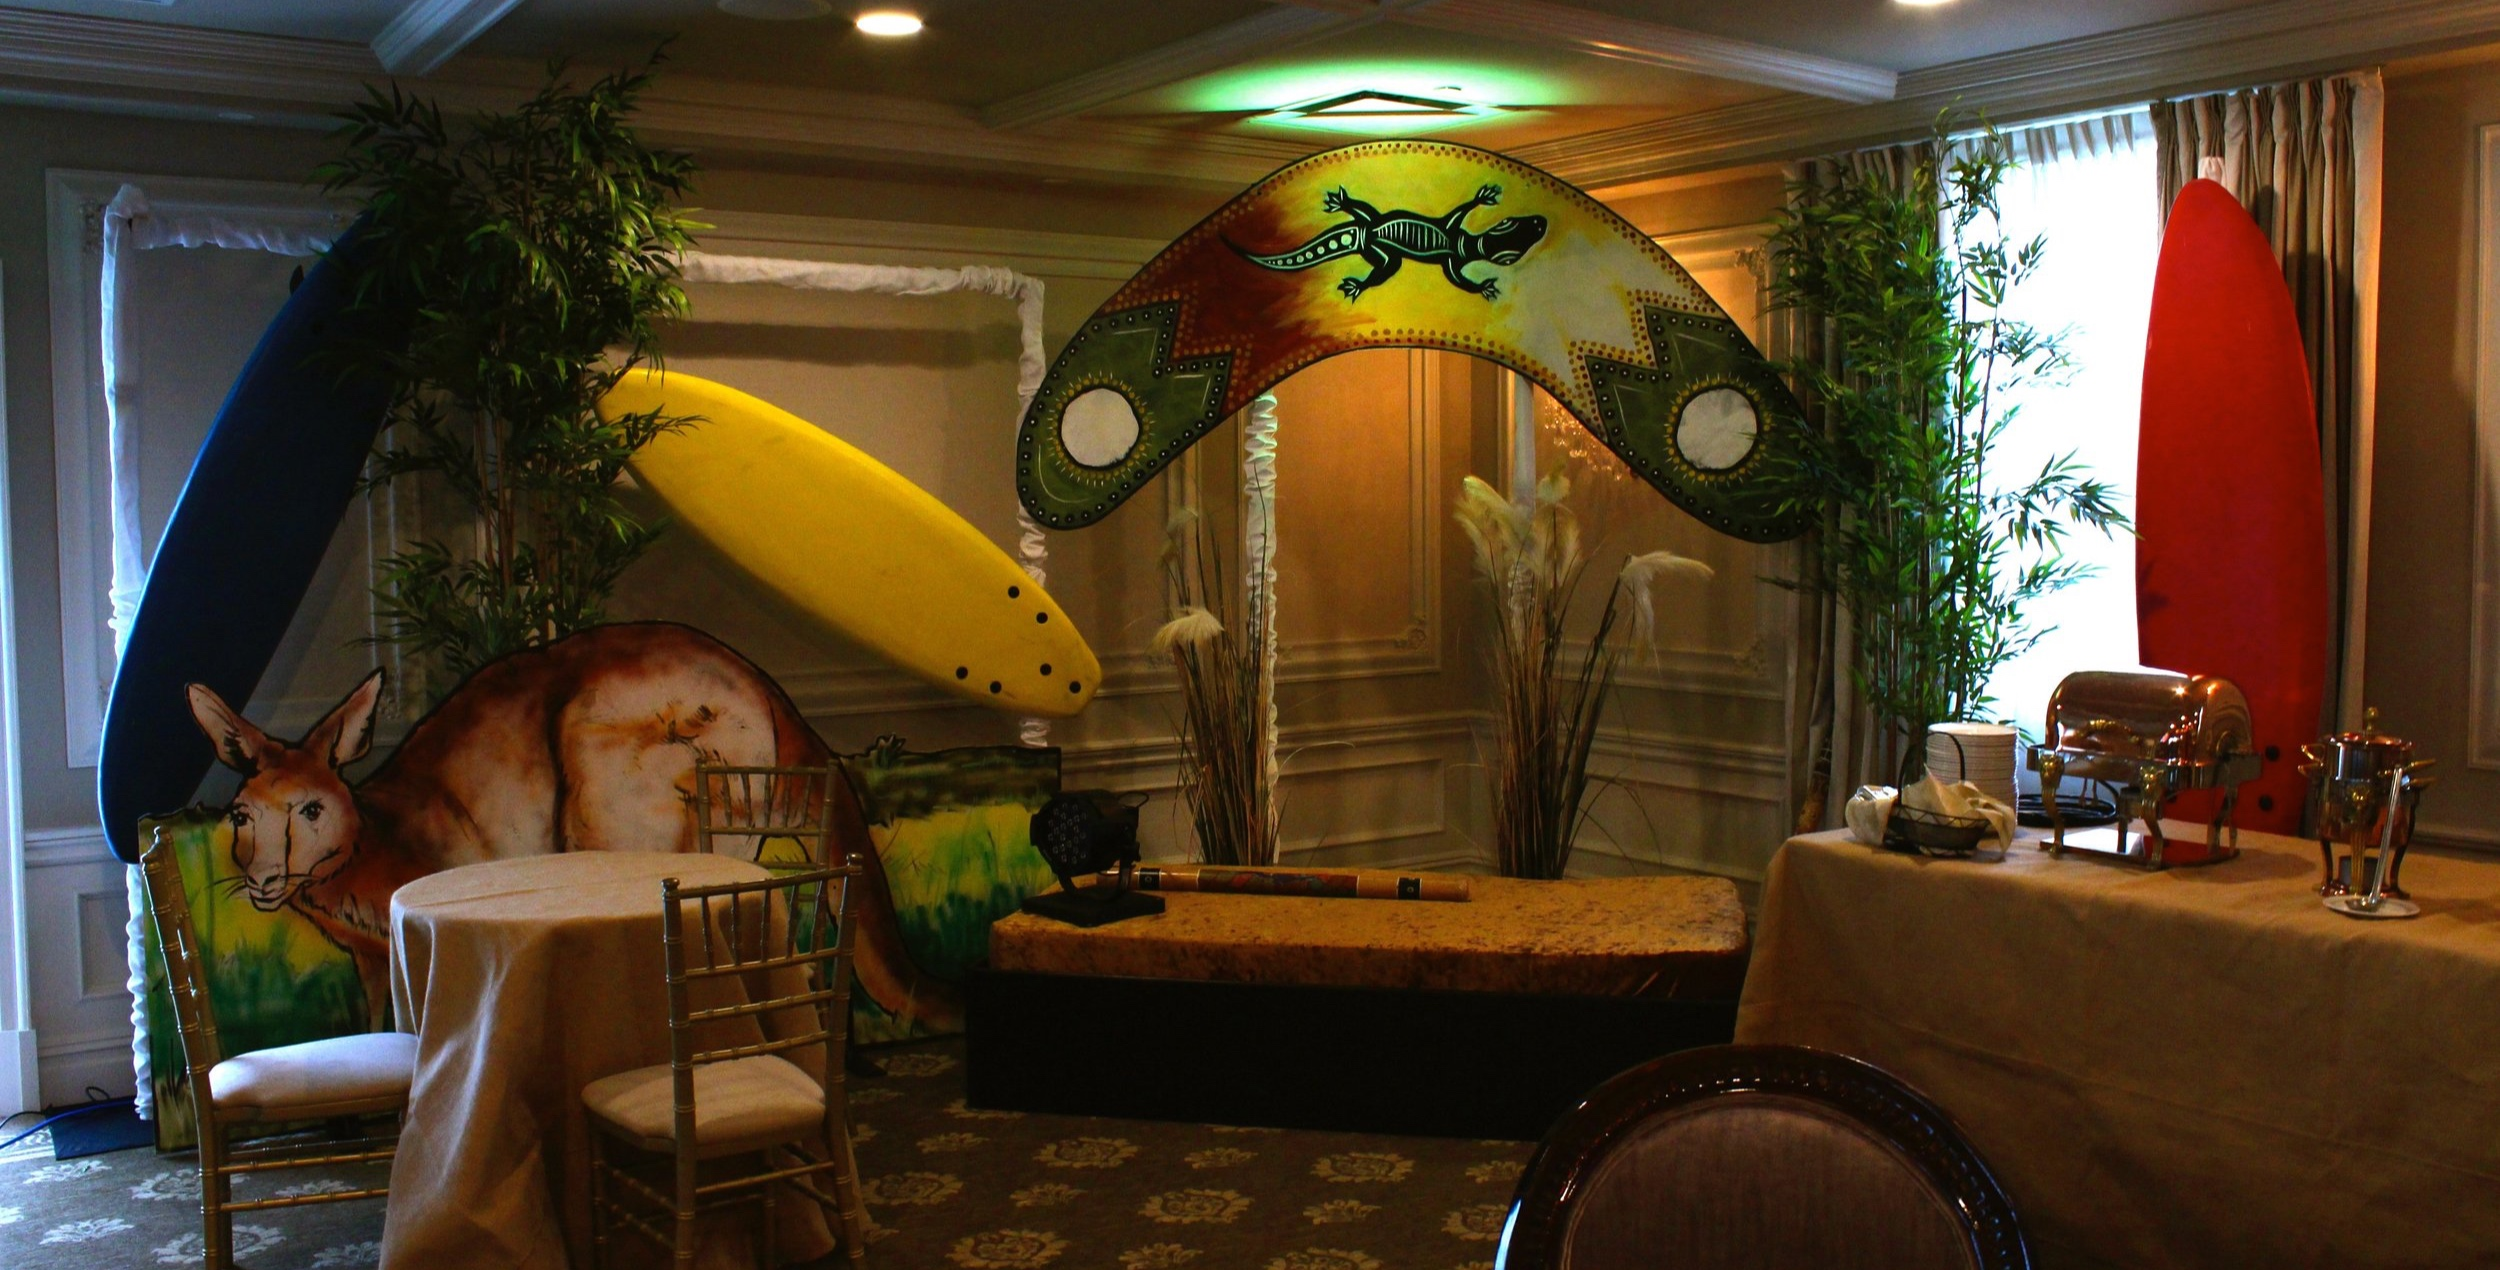 Aussie+themed+autralian+party+theme+event+international+decor+props+rental+rentals+nj+ny+pa+eggsotic+events.jpg